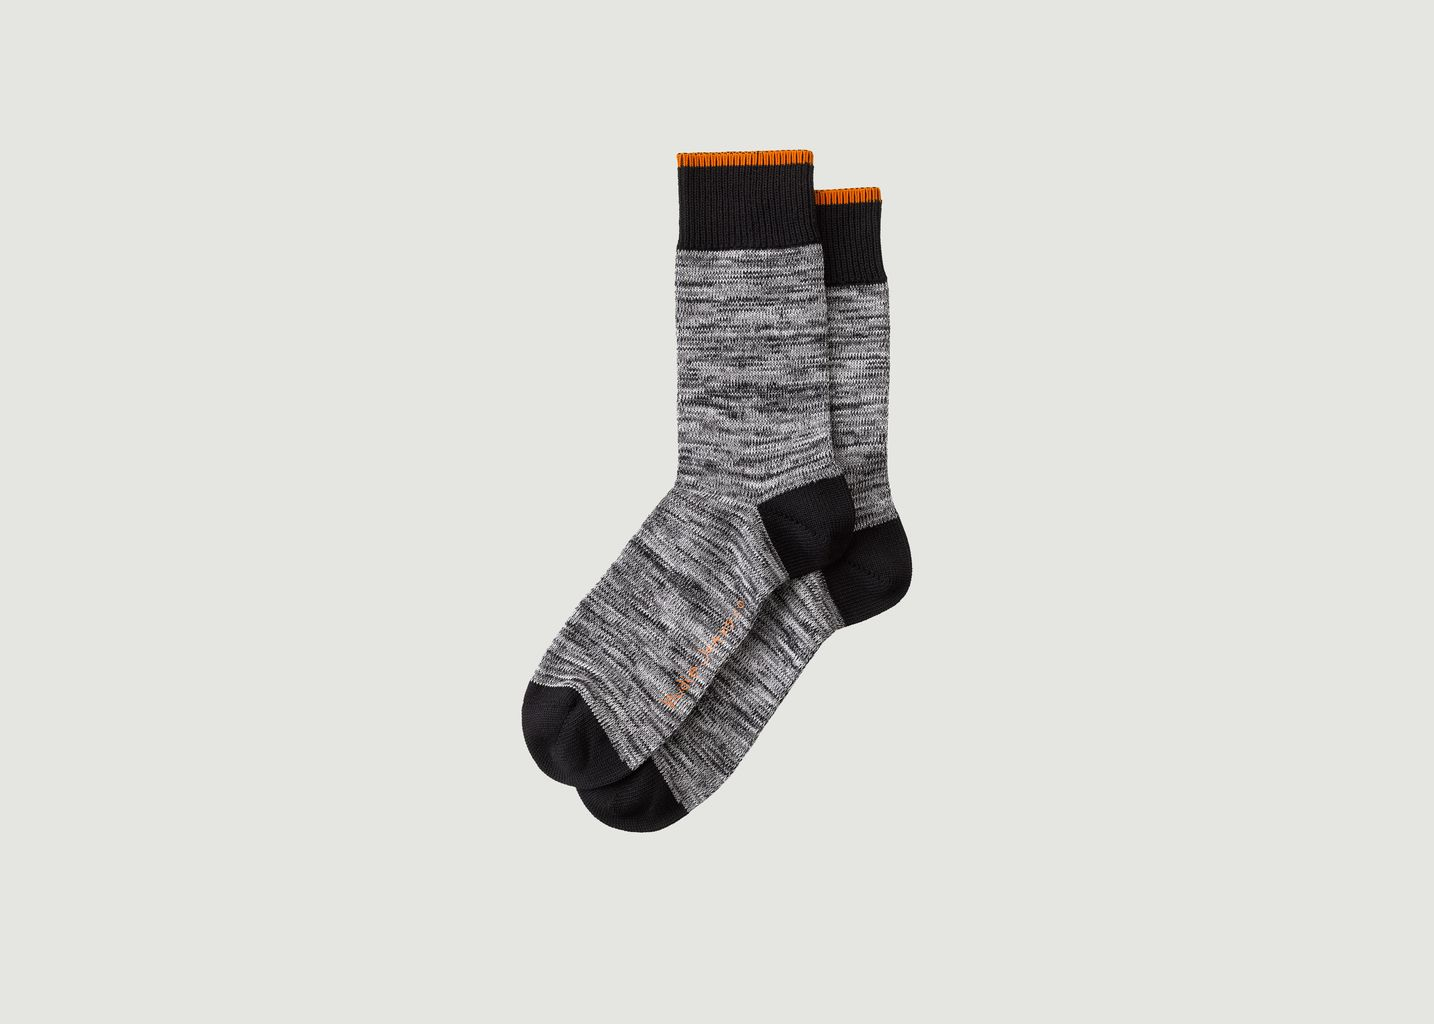 Chaussettes chinées Rasmusson - Nudie Jeans